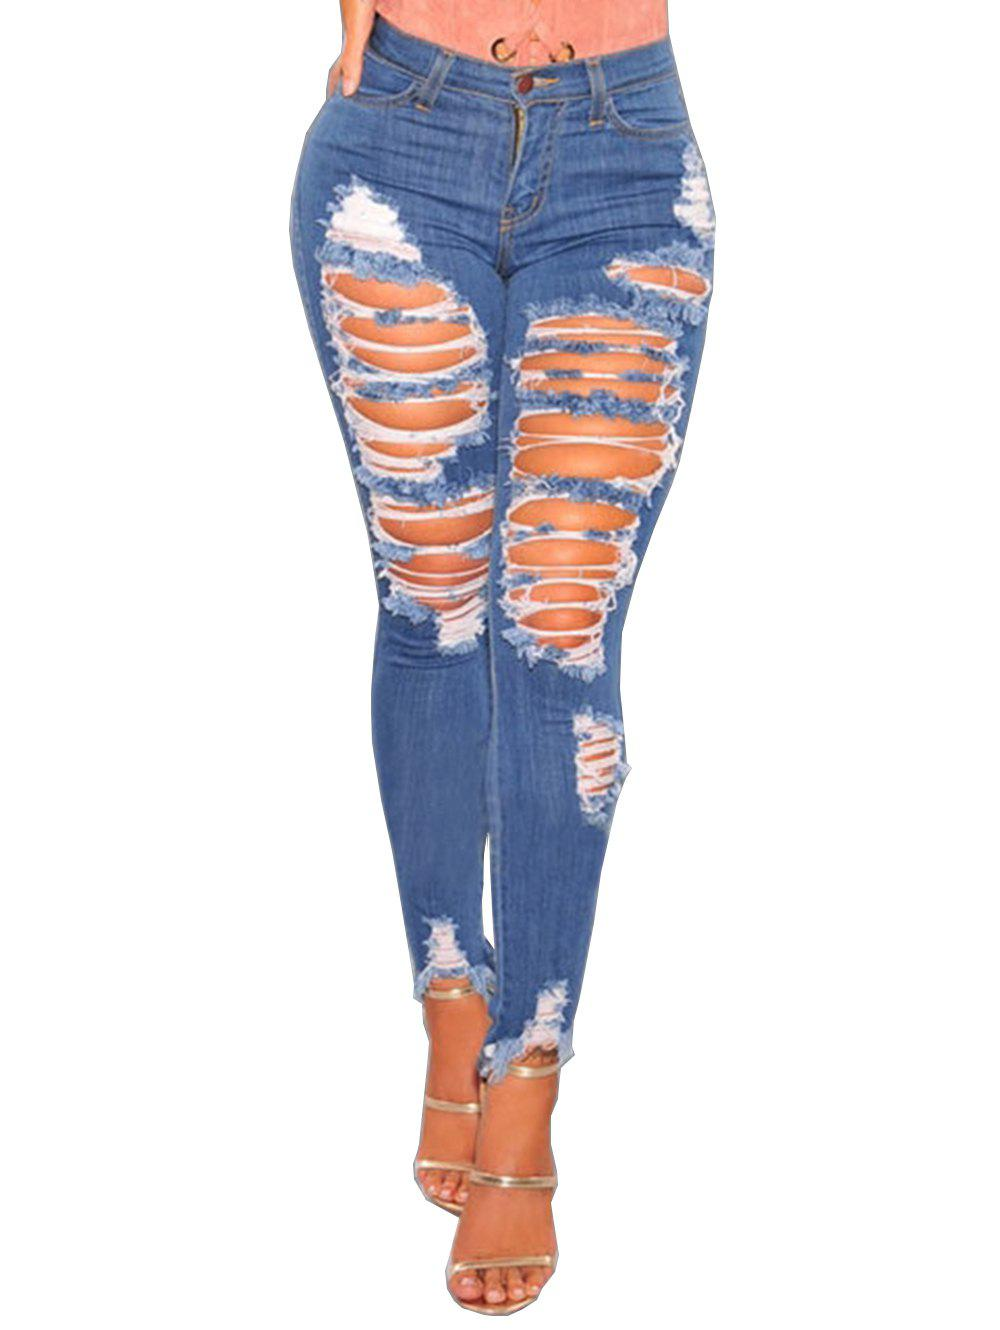 Women Casual Destroyed Ripped Distressed Skinny Denim Jeans - BLUE M